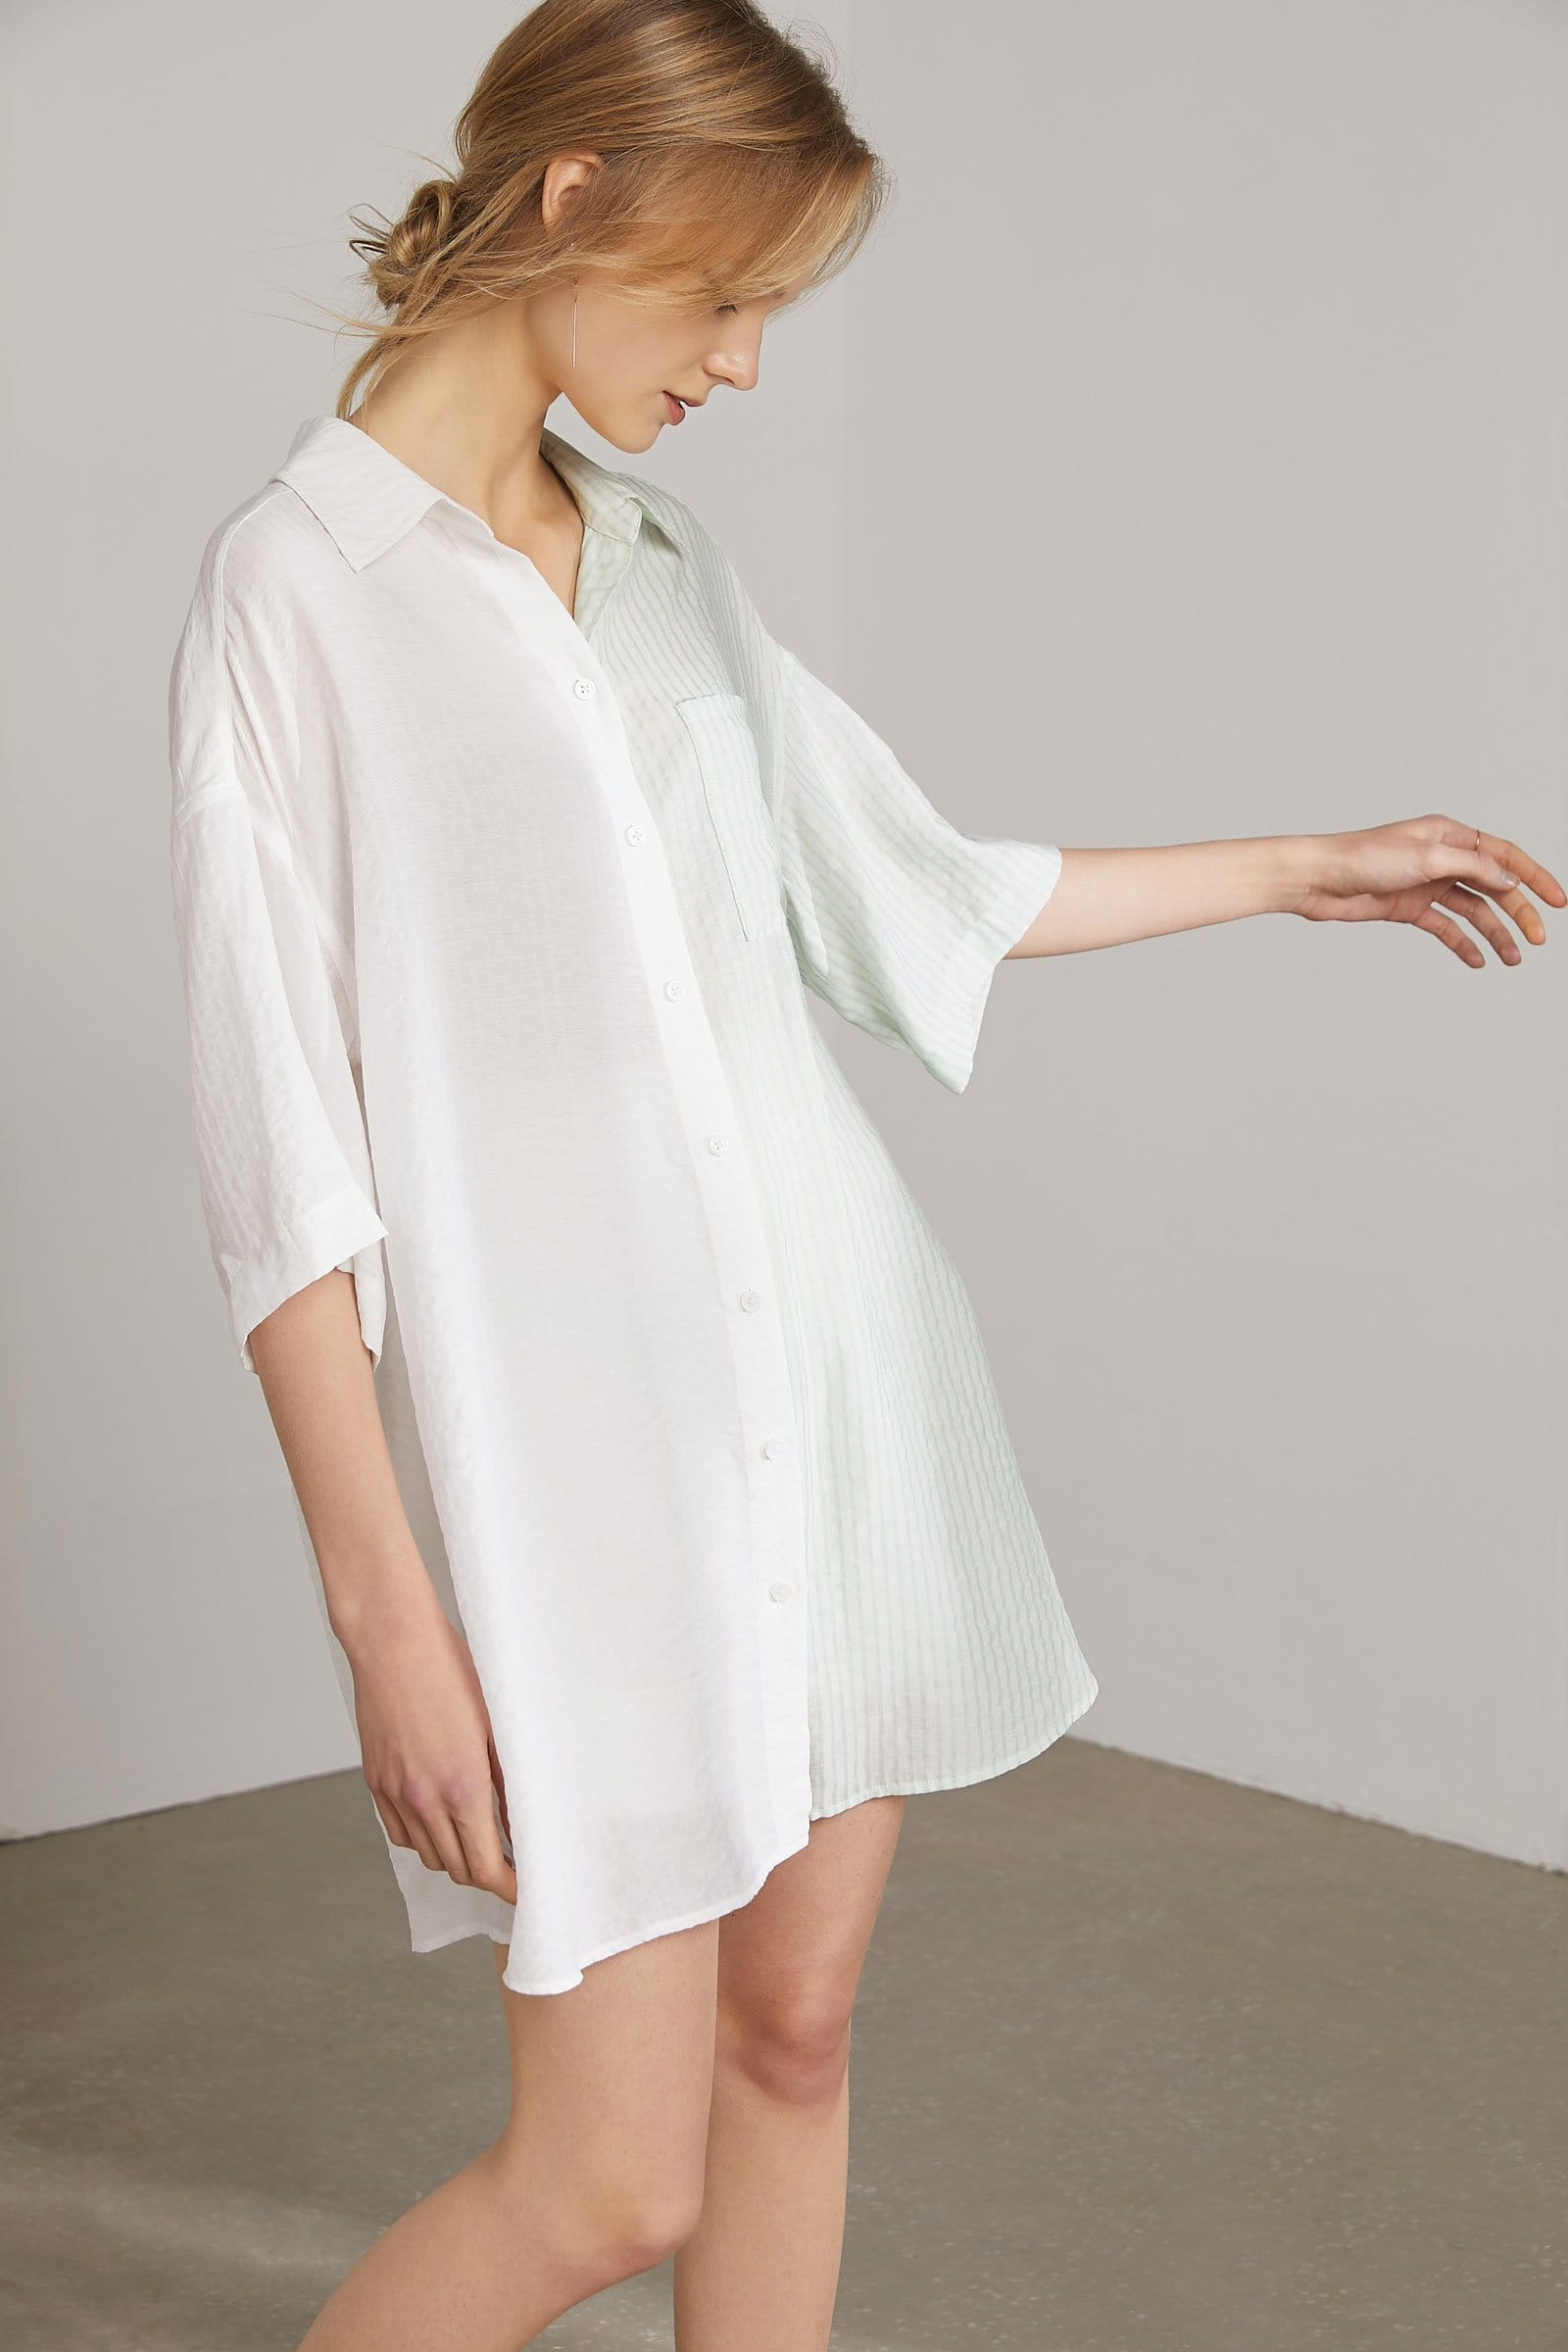 Anna Creamy Mint Shirt Dress